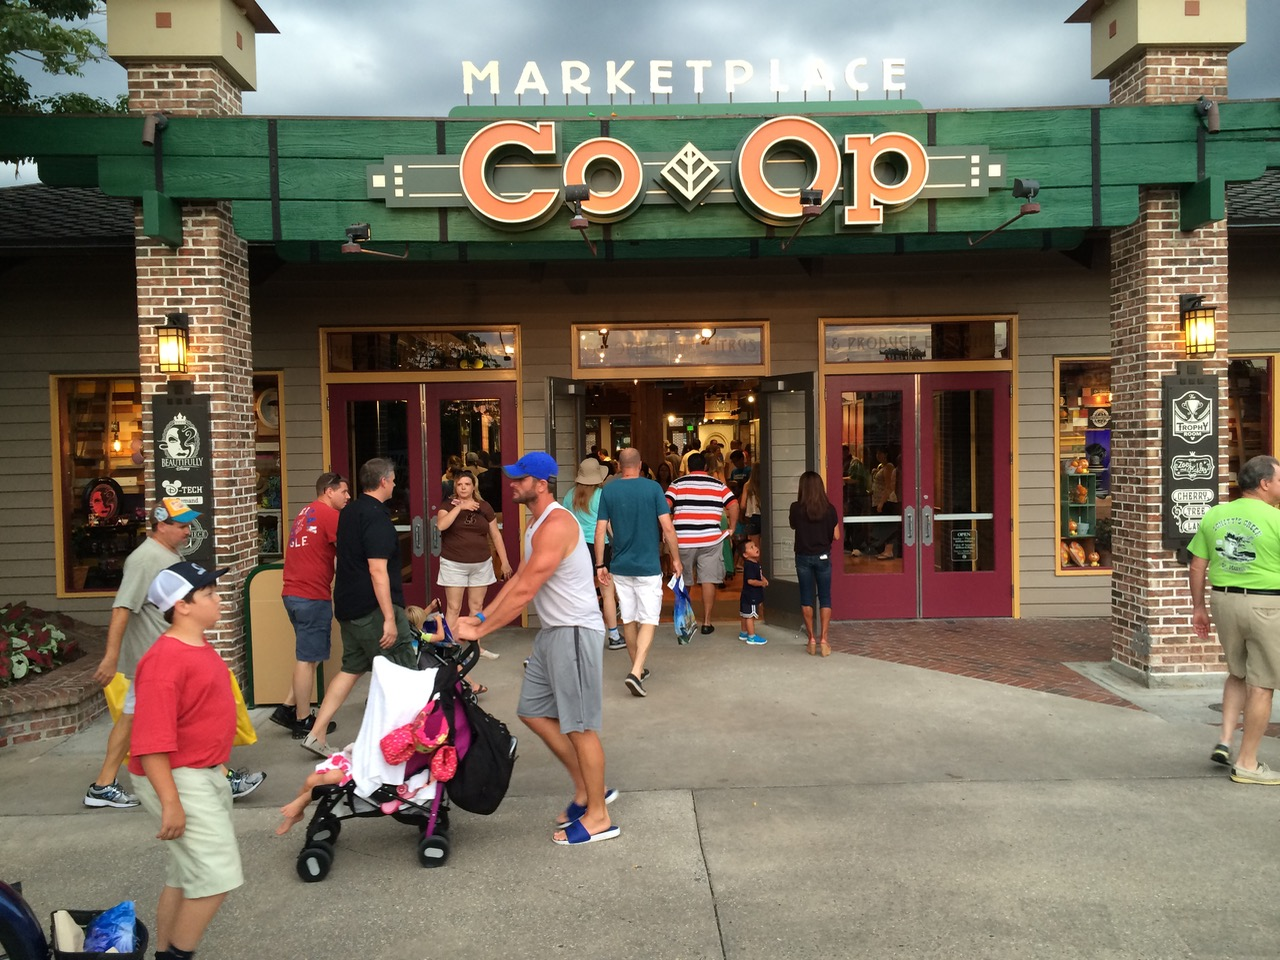 The new Marketplace Co Op was once Mickey's Character Shop, one of the best places to look for souvenirs before heading home from your vacation. It would be replaced by a much bigger World of Disney store. But the original building itself comes from when the Village first opened. Photo by J. Jeff Kober.